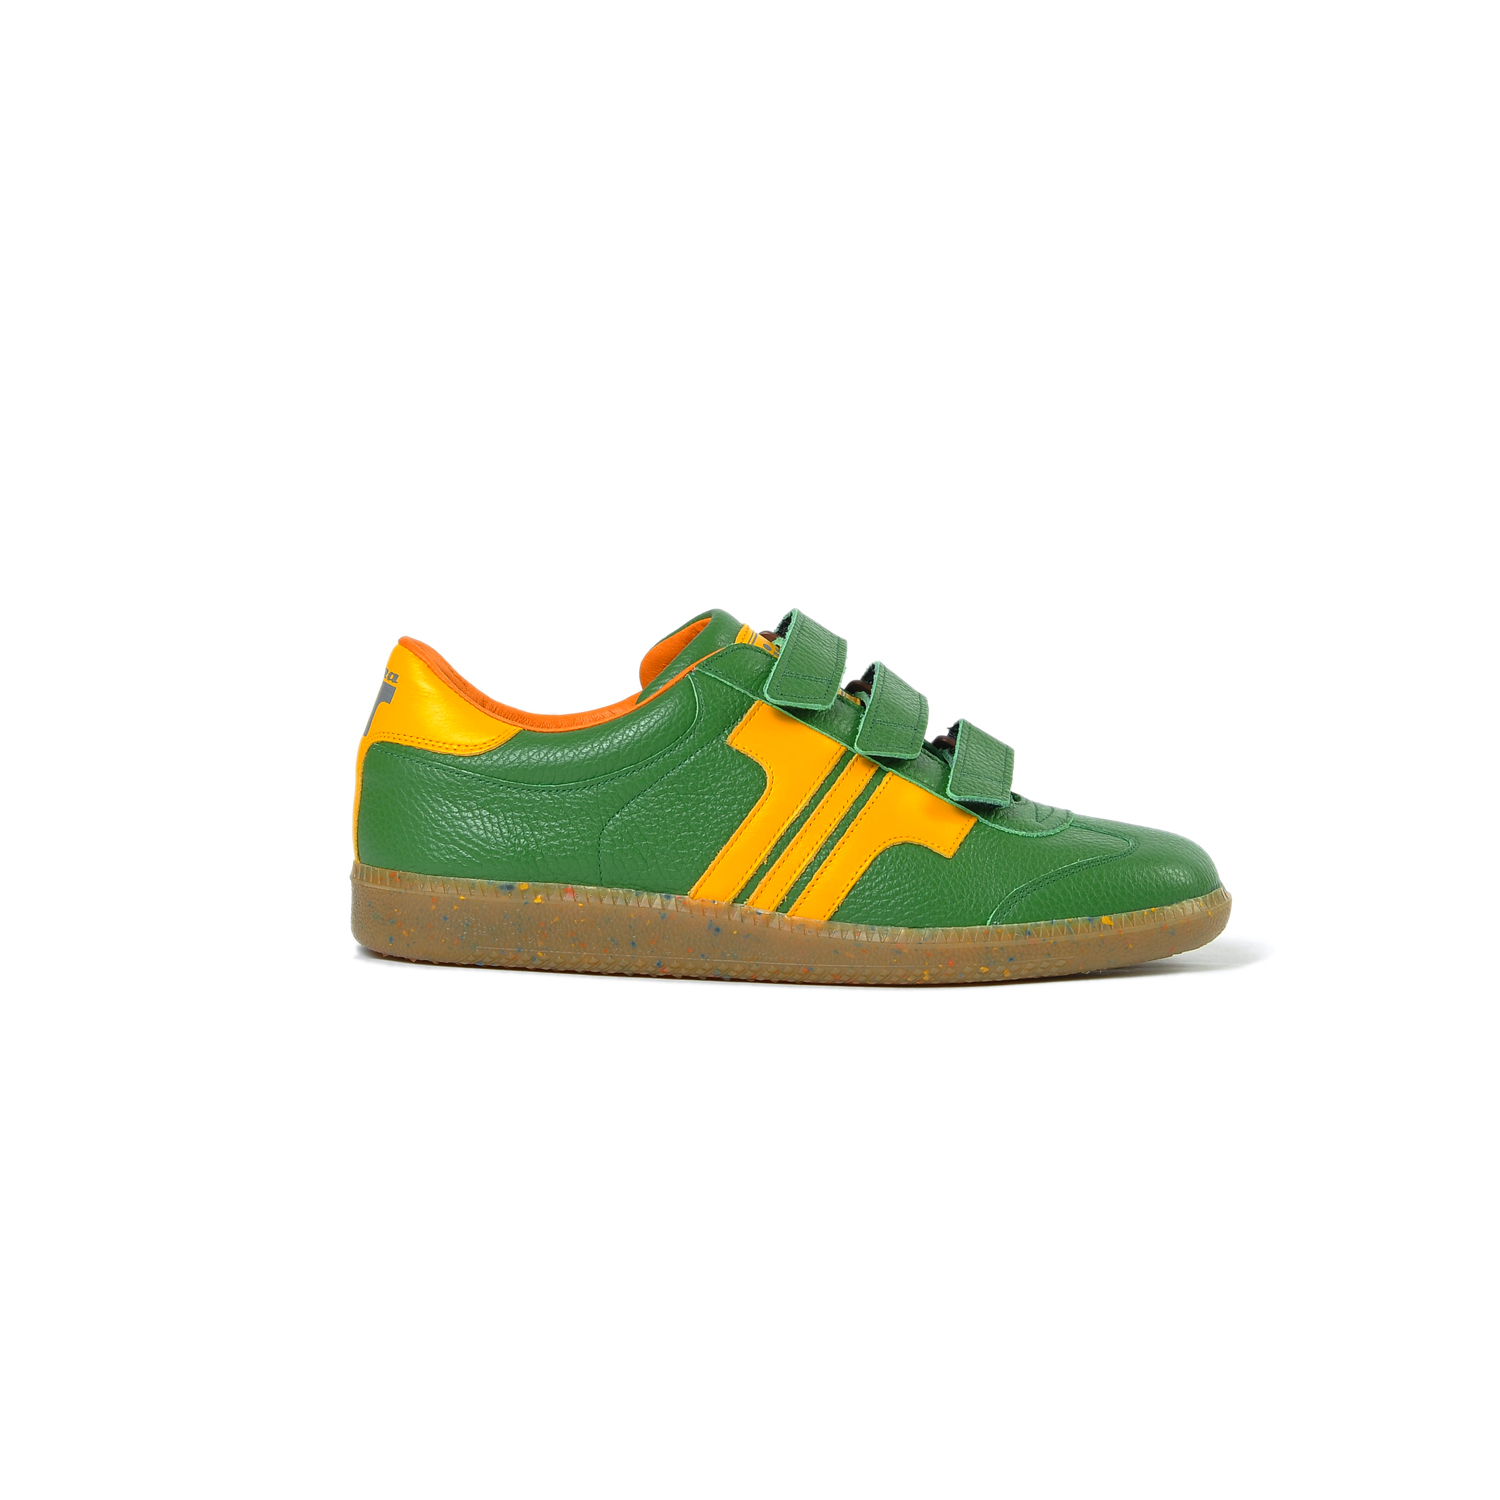 Tisza shoes - Delux - Green-yellow